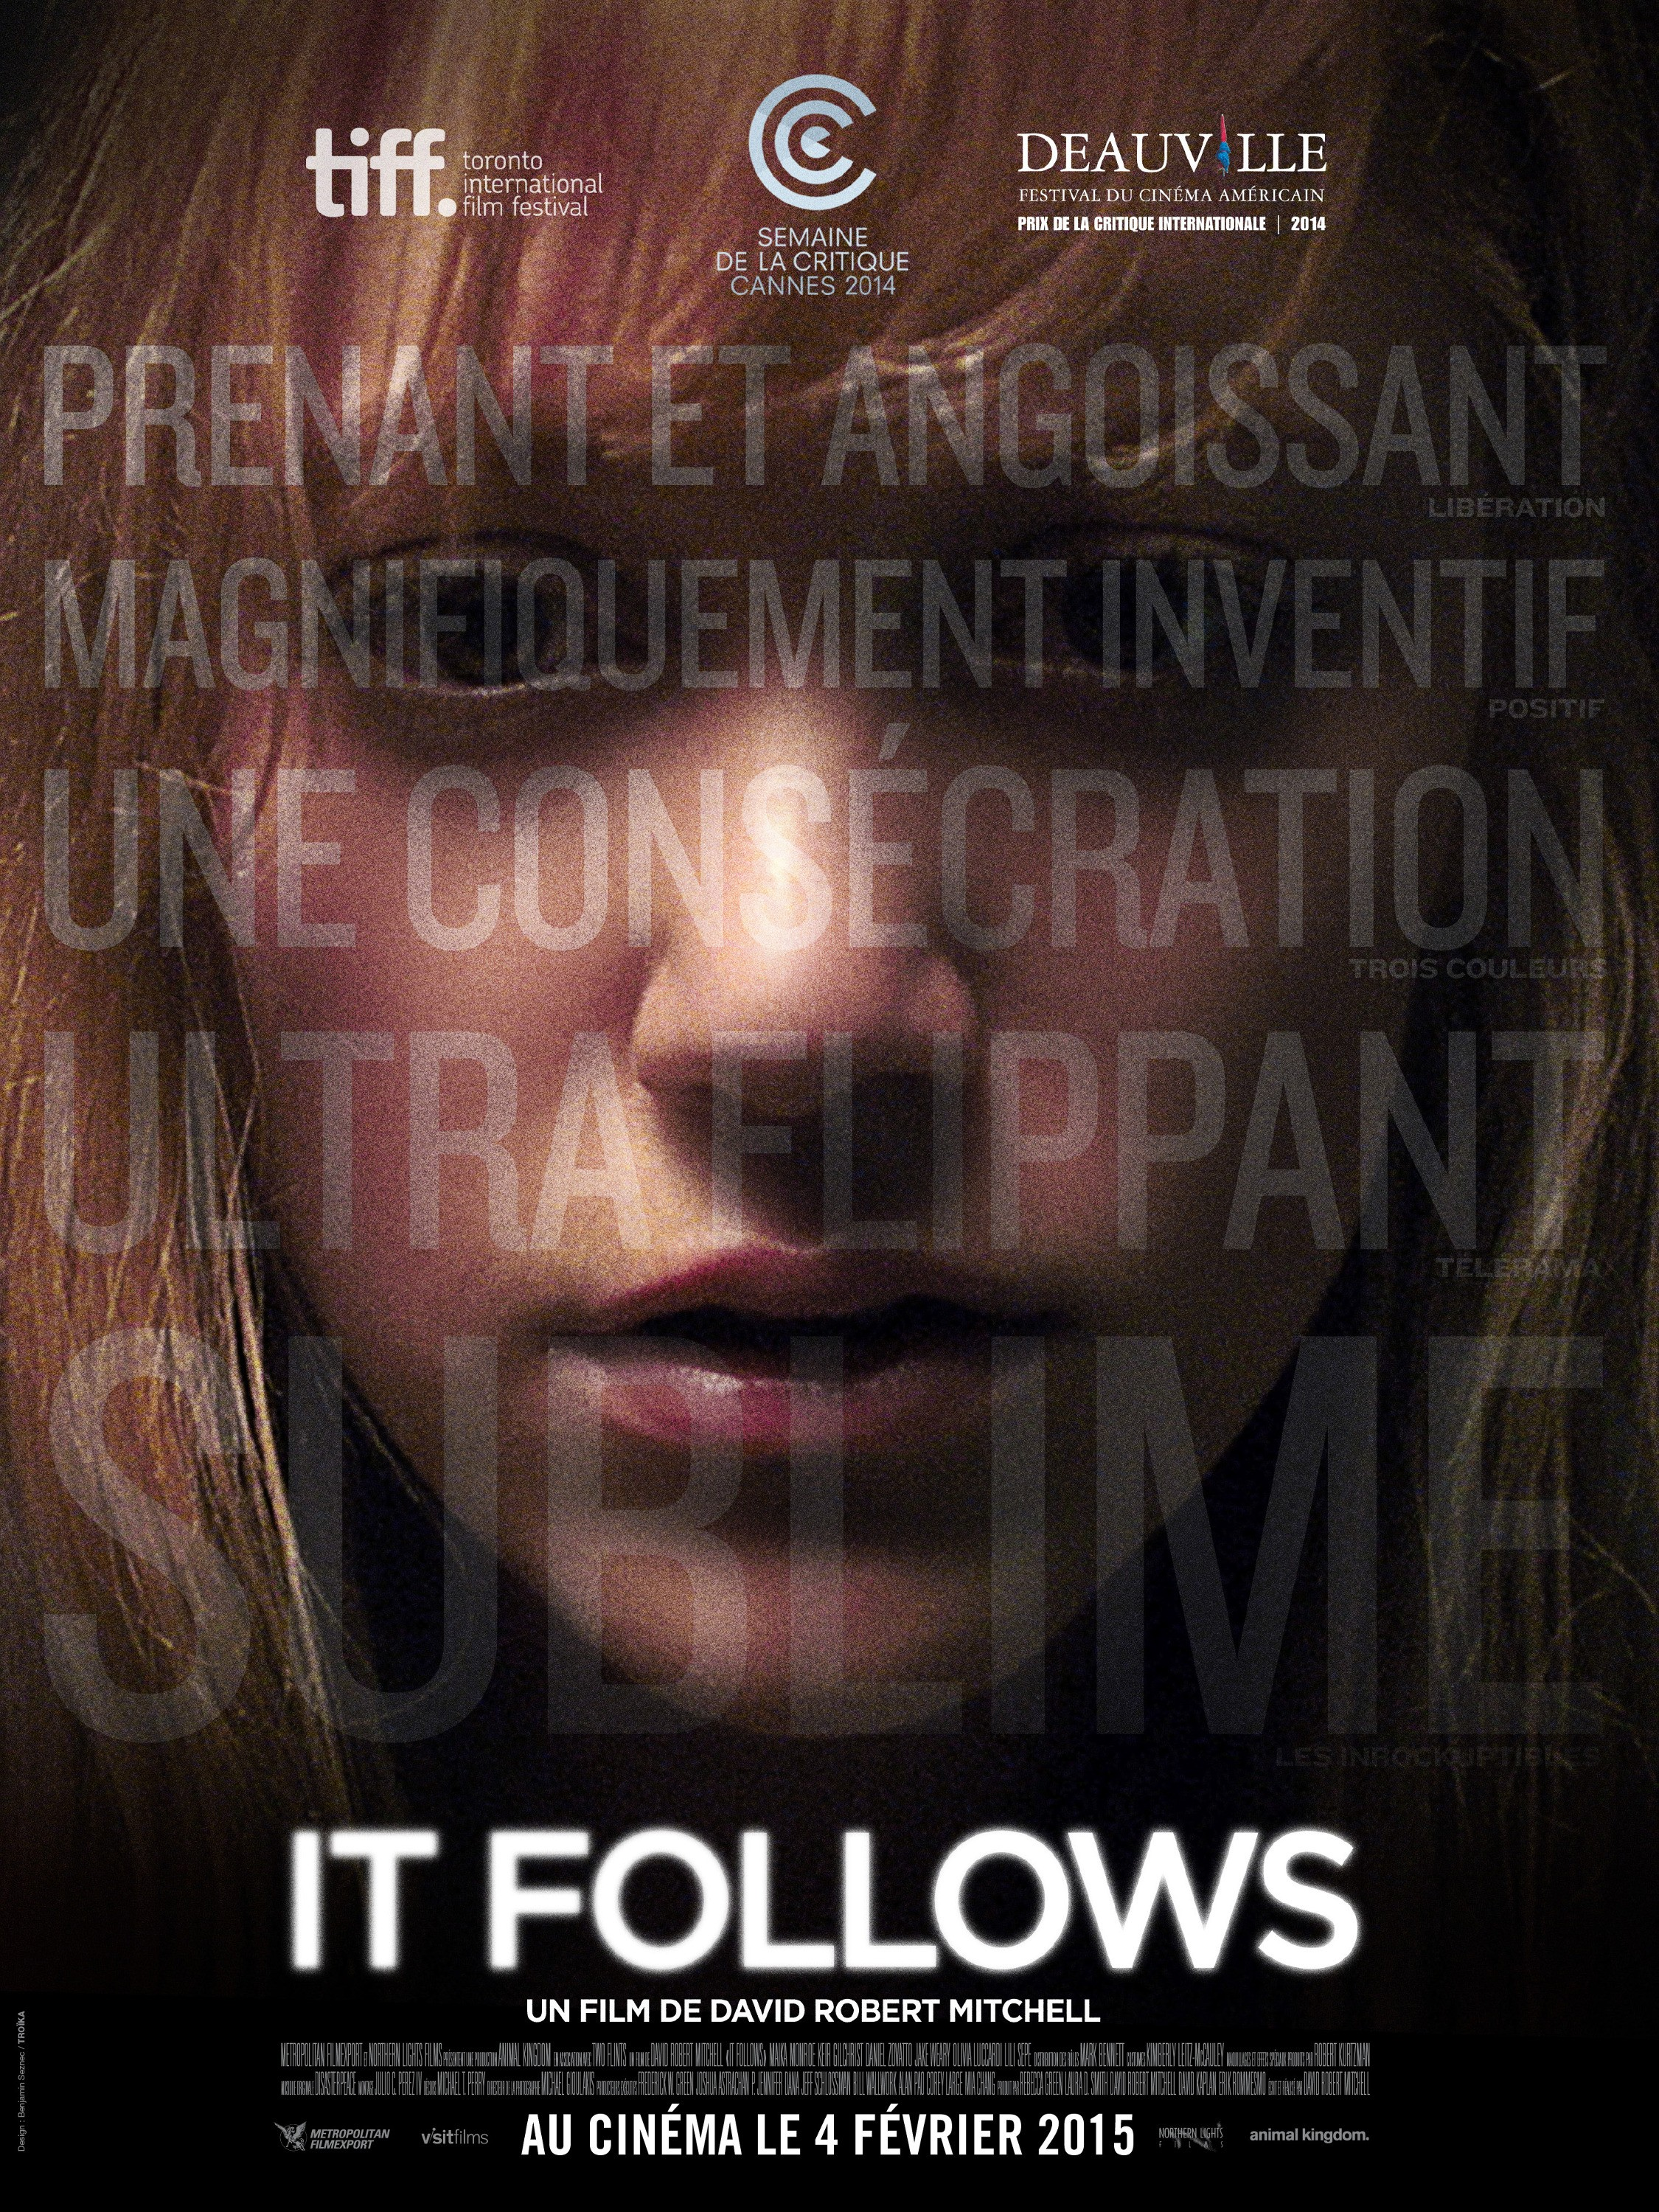 It Follows-POSTER XXLG-21JANEIRO2014-02